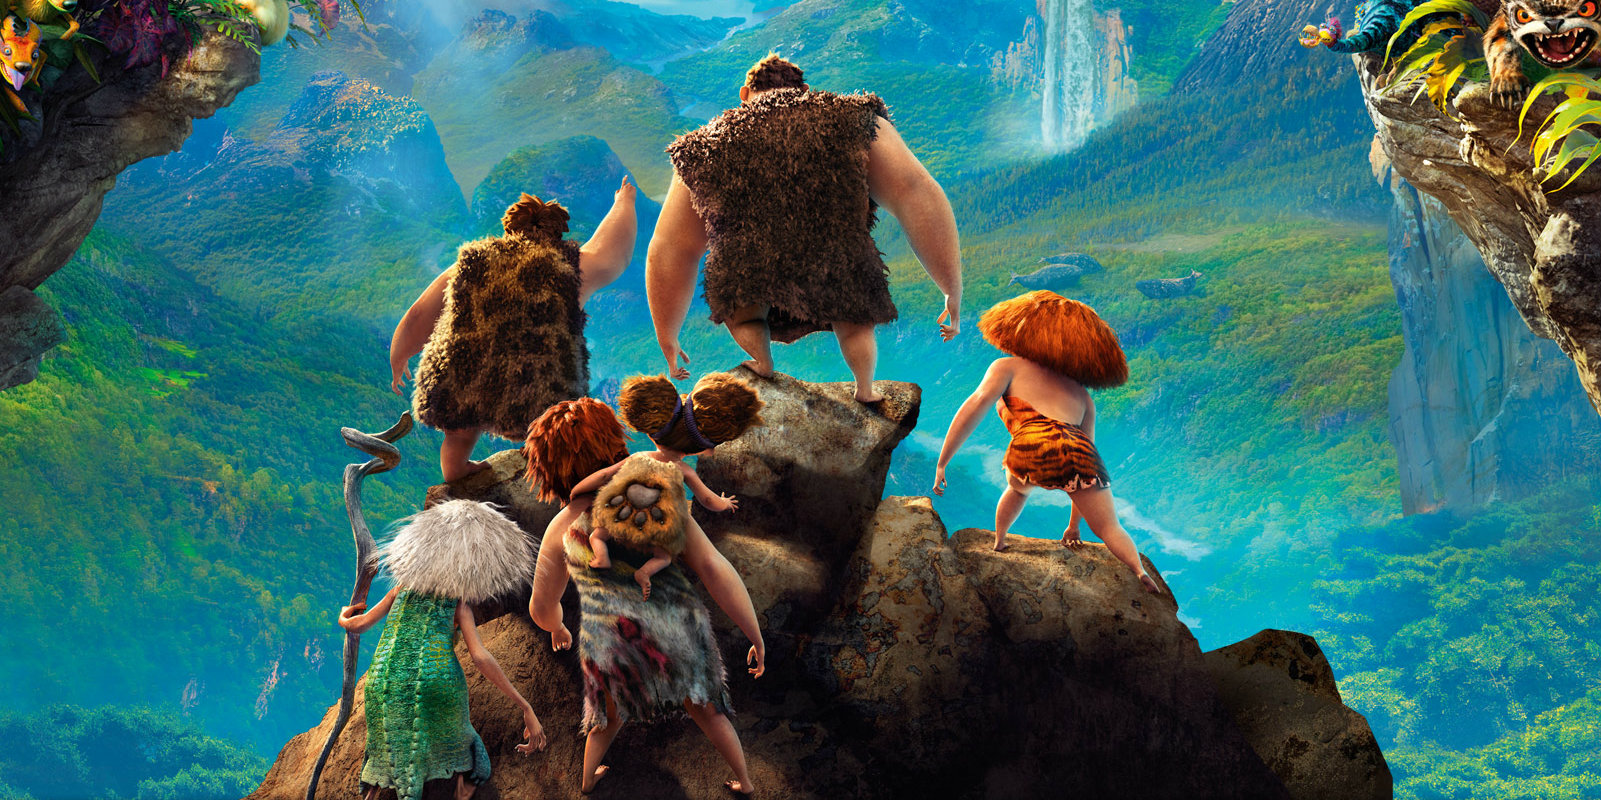 Croods 2 release date in Melbourne